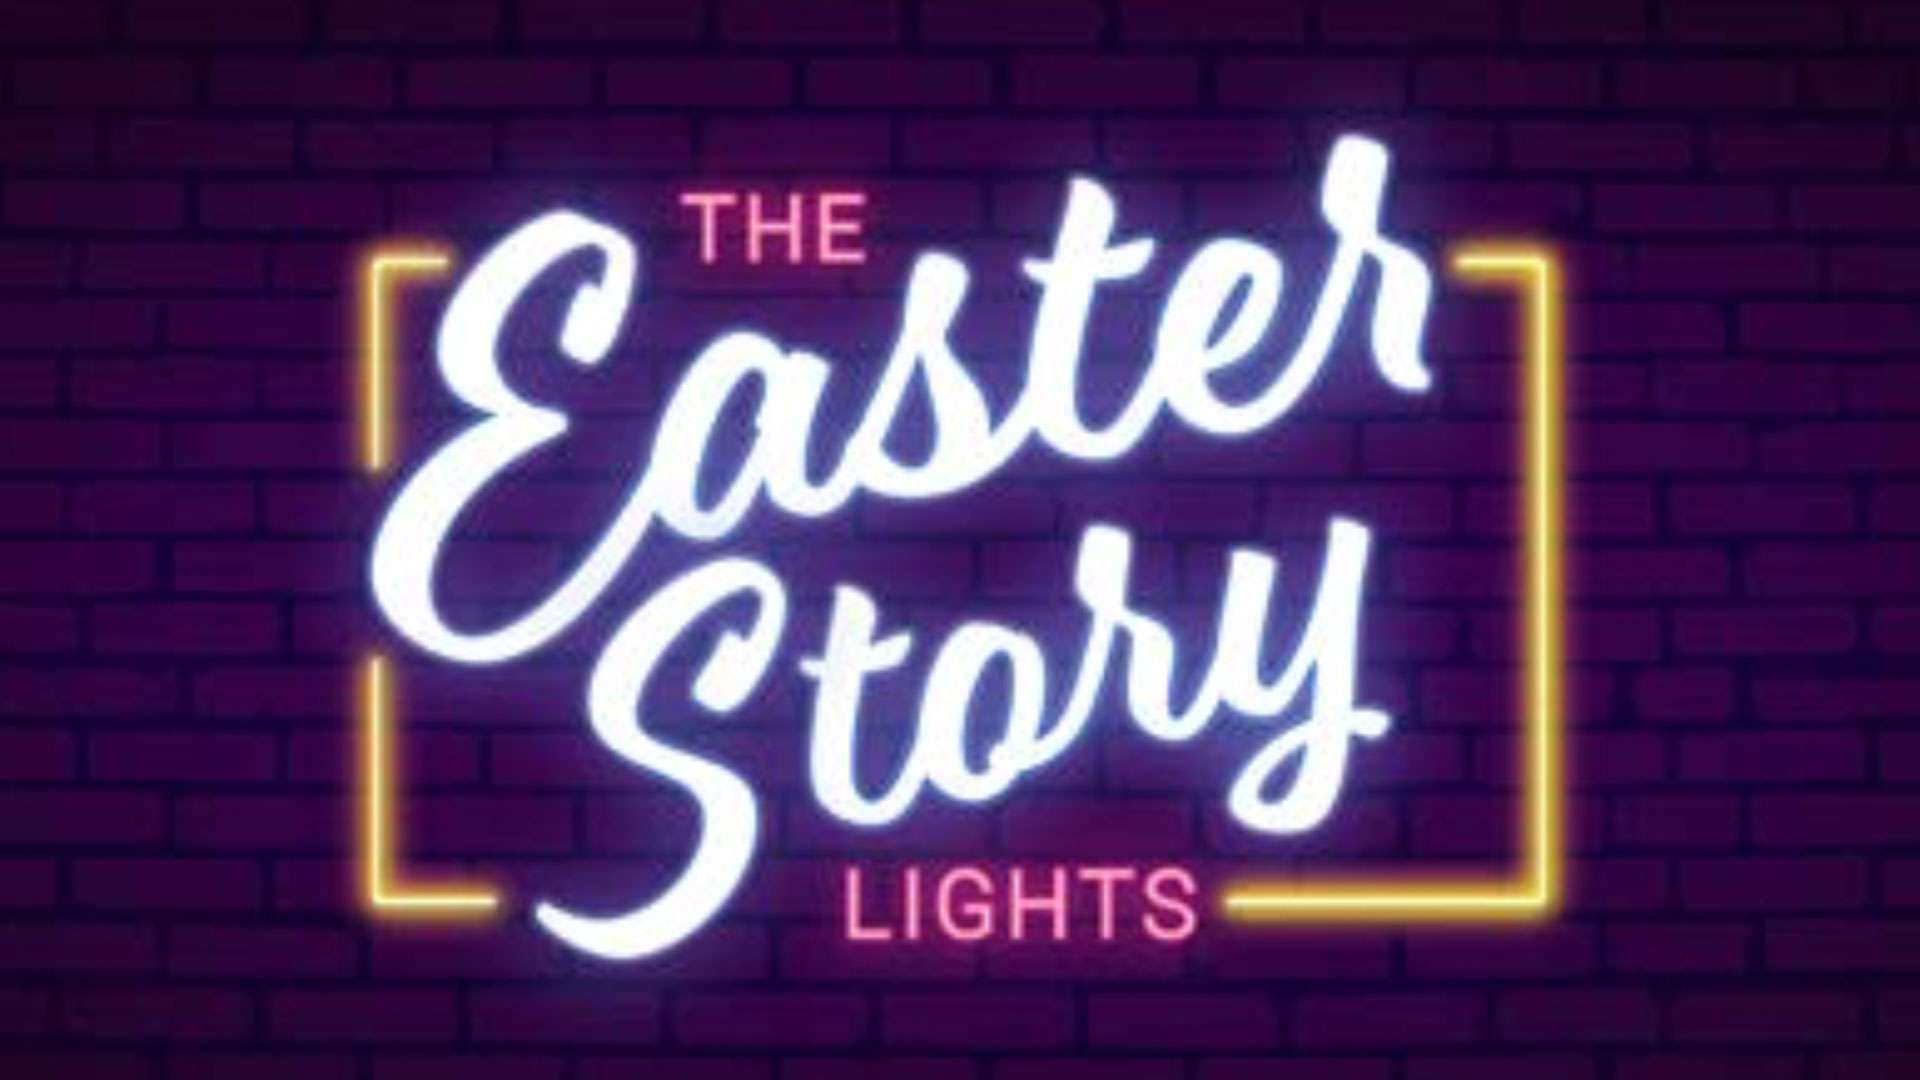 1920x1080-Easter-Story-Lights